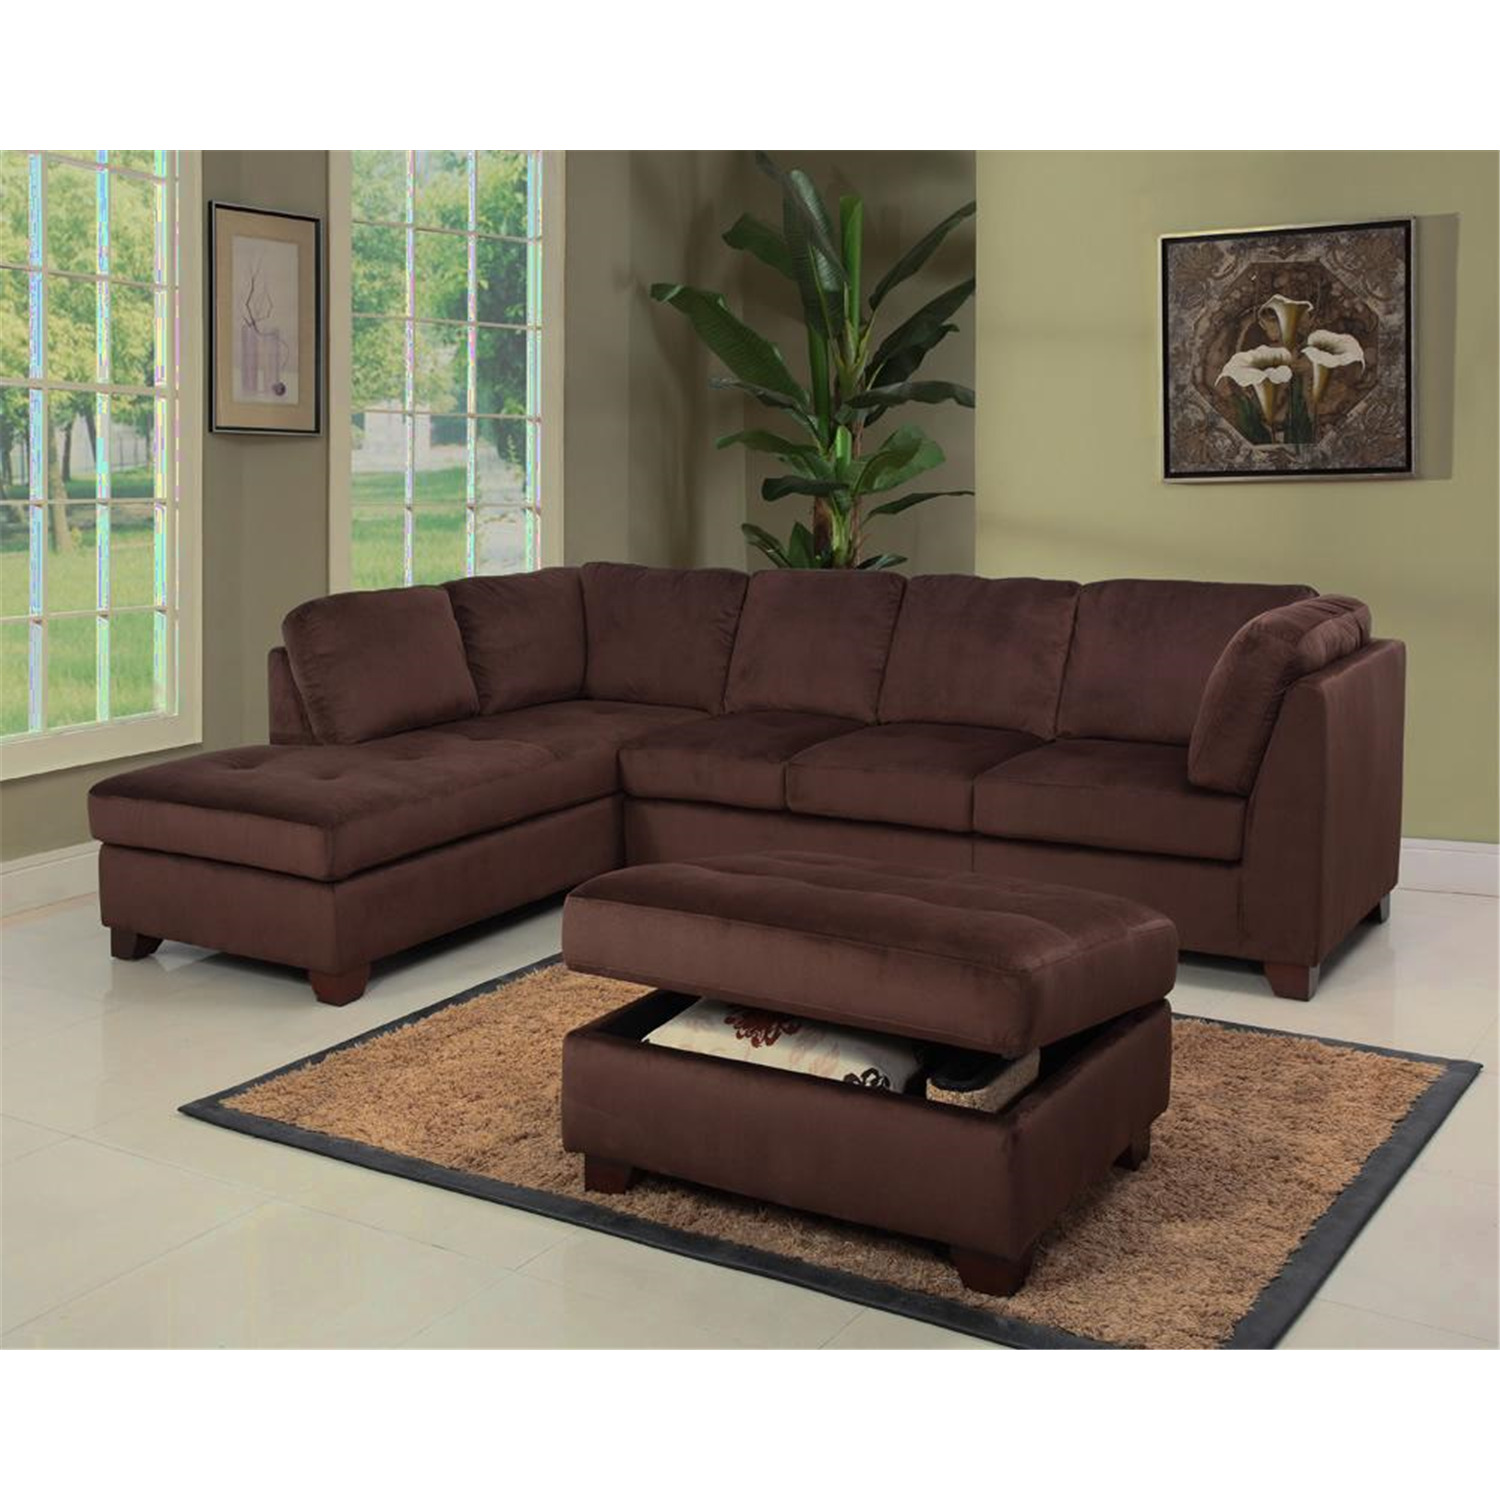 Abbyson living microsuede sectional sofa and storage for Suede sectional